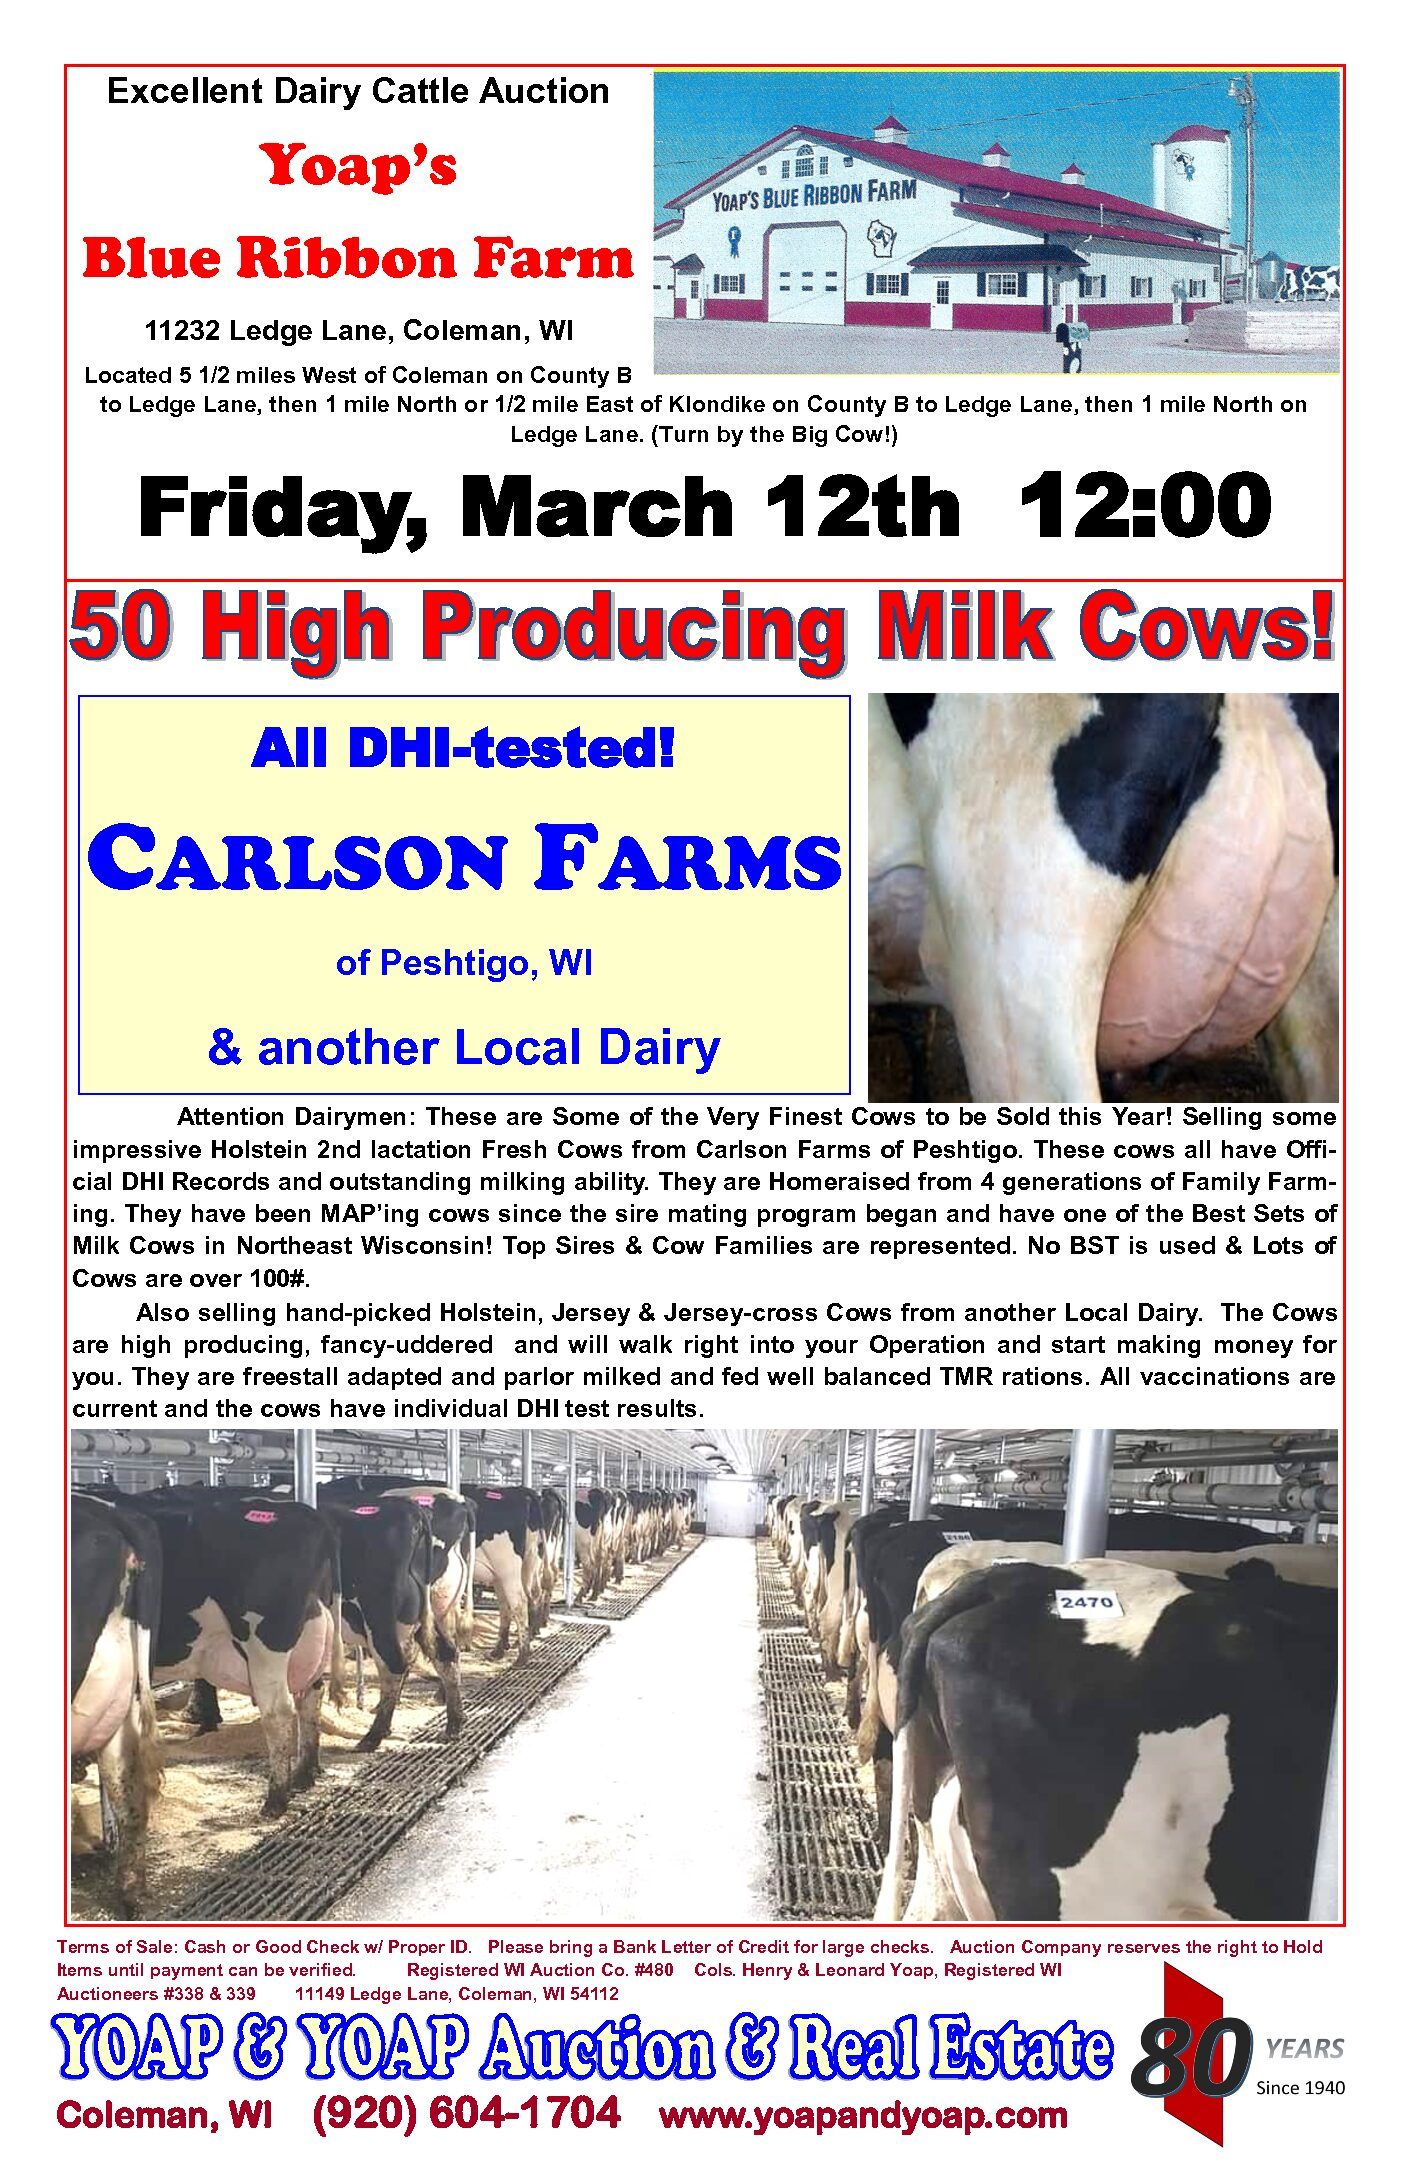 Outstanding Milk Cows at Auction!